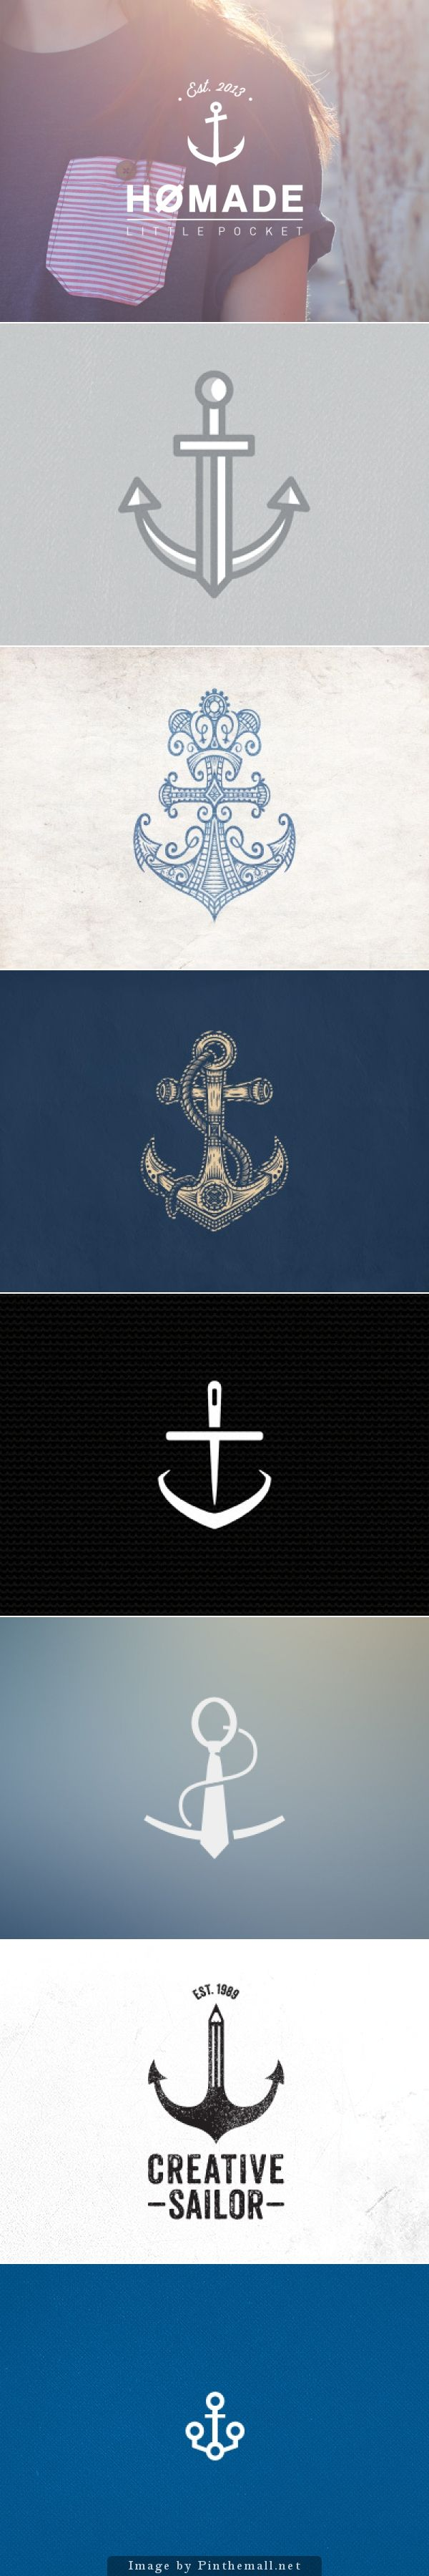 Beautiful Anchor Logos It's such a cliche thing now but I've always loved anchors and still do a lot. Especially like this.